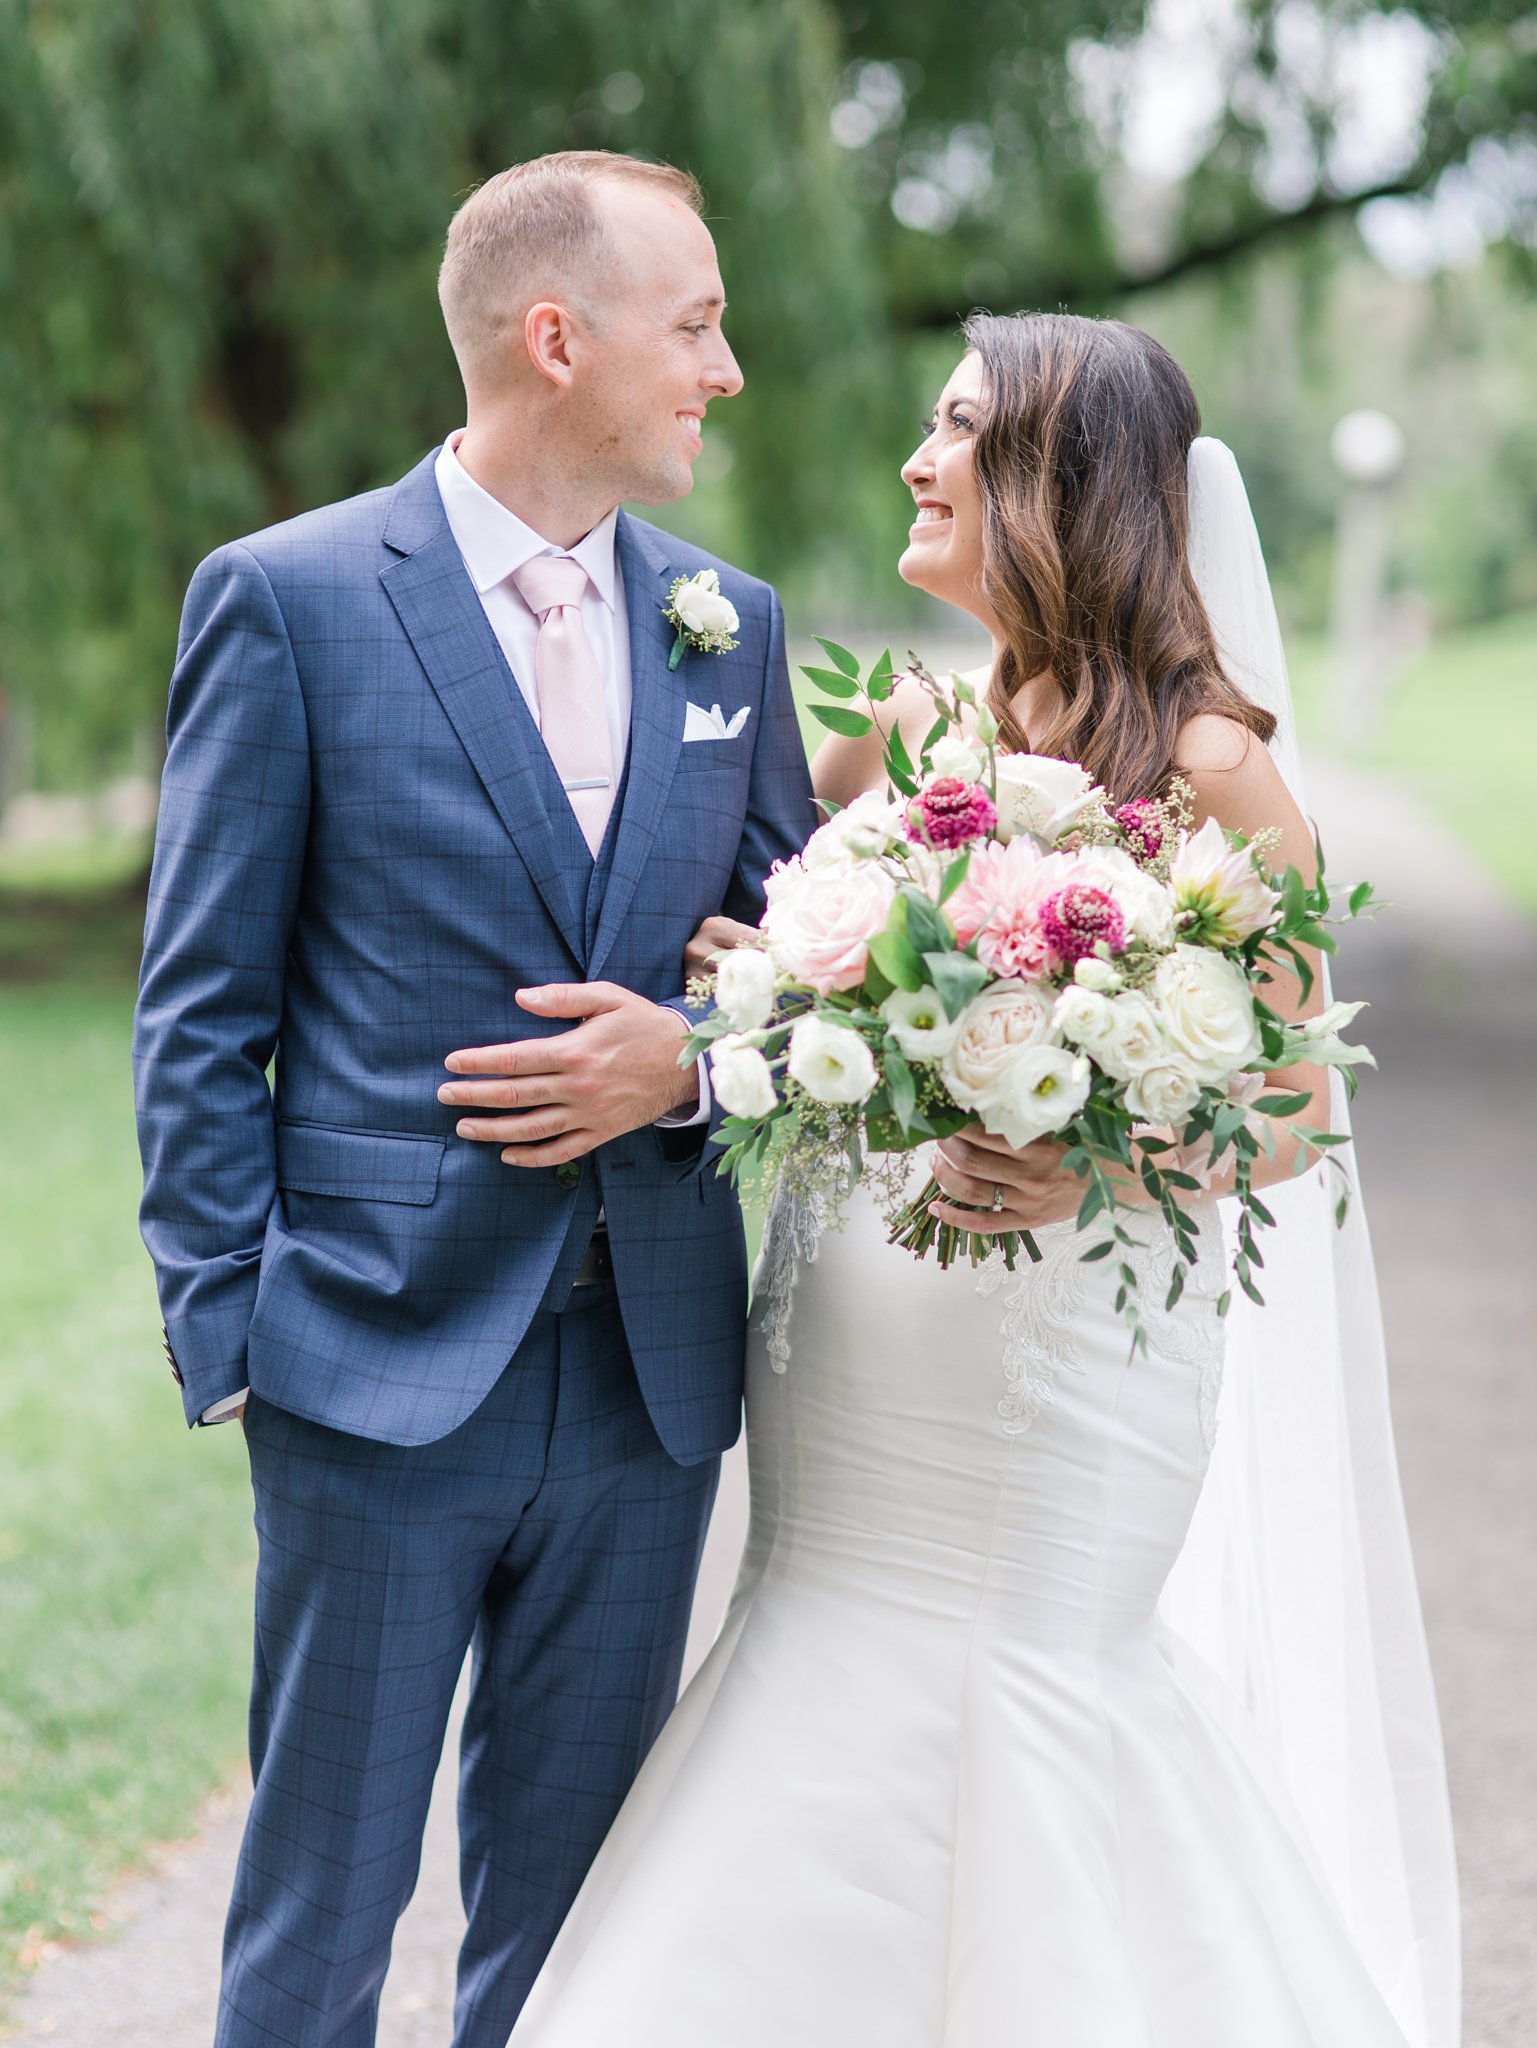 Park near Horticulture Building wedding at Lansdowne Amy Pinder Photography